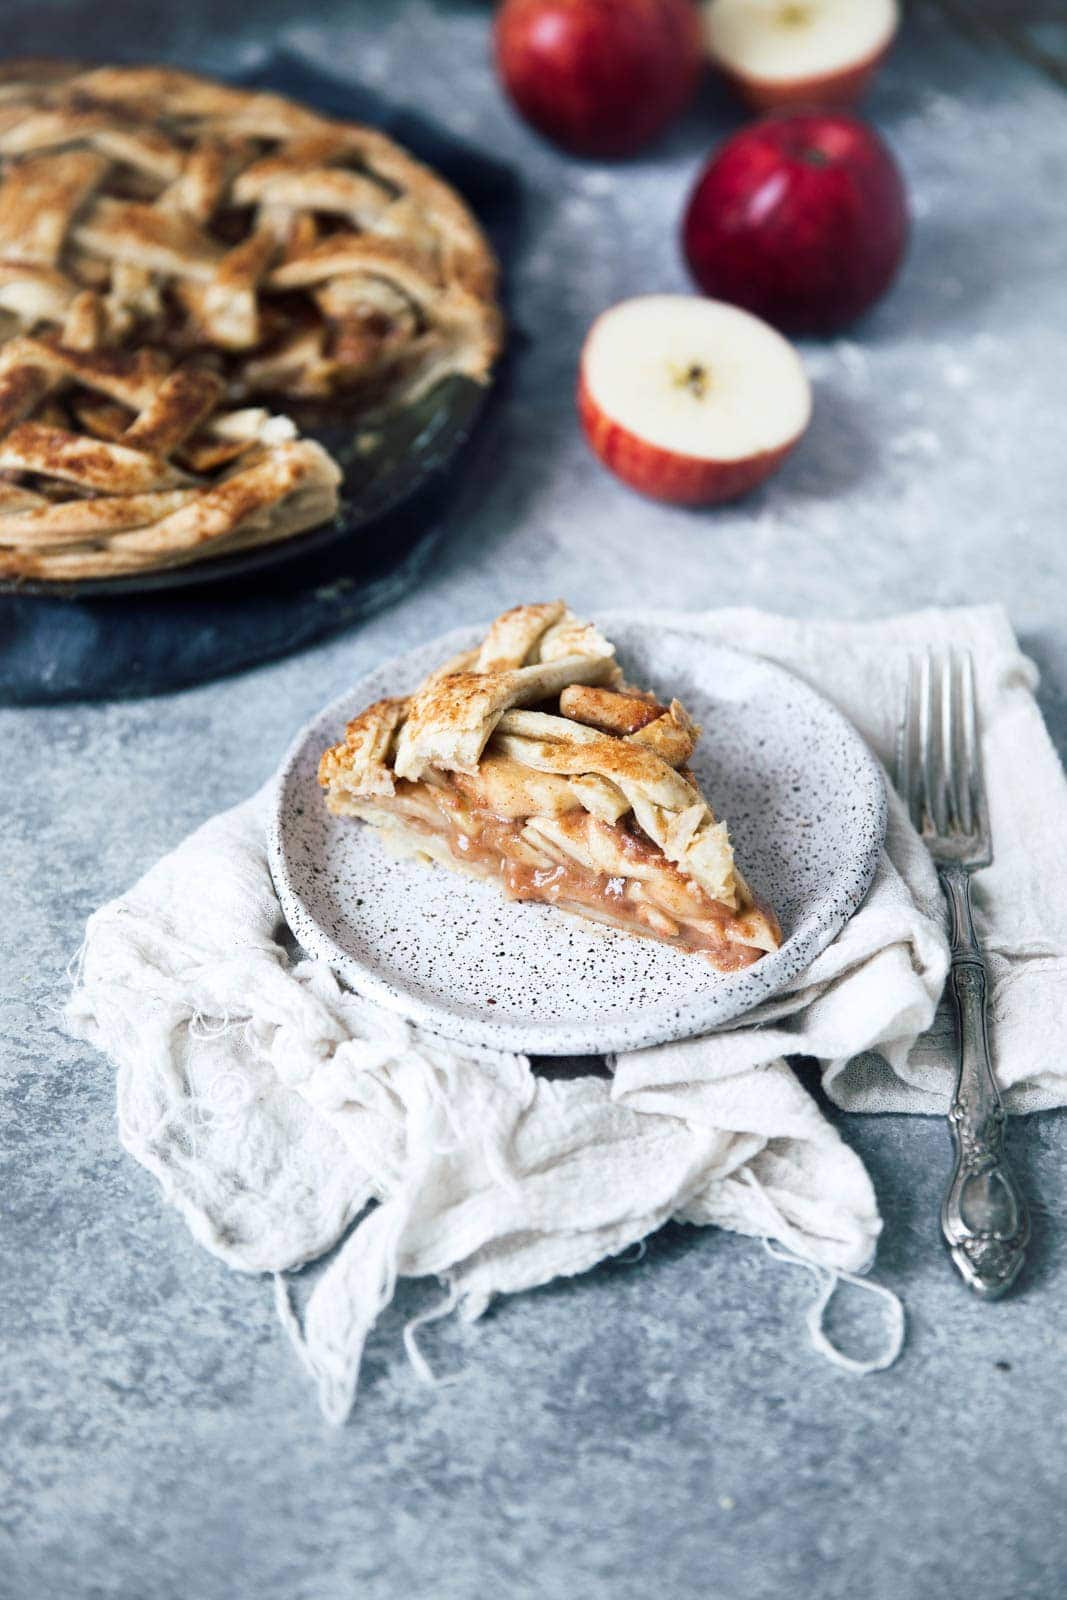 There's nothing better than homemade Apple Pie. Except maybe Salted Maple Caramel Apple Pie.